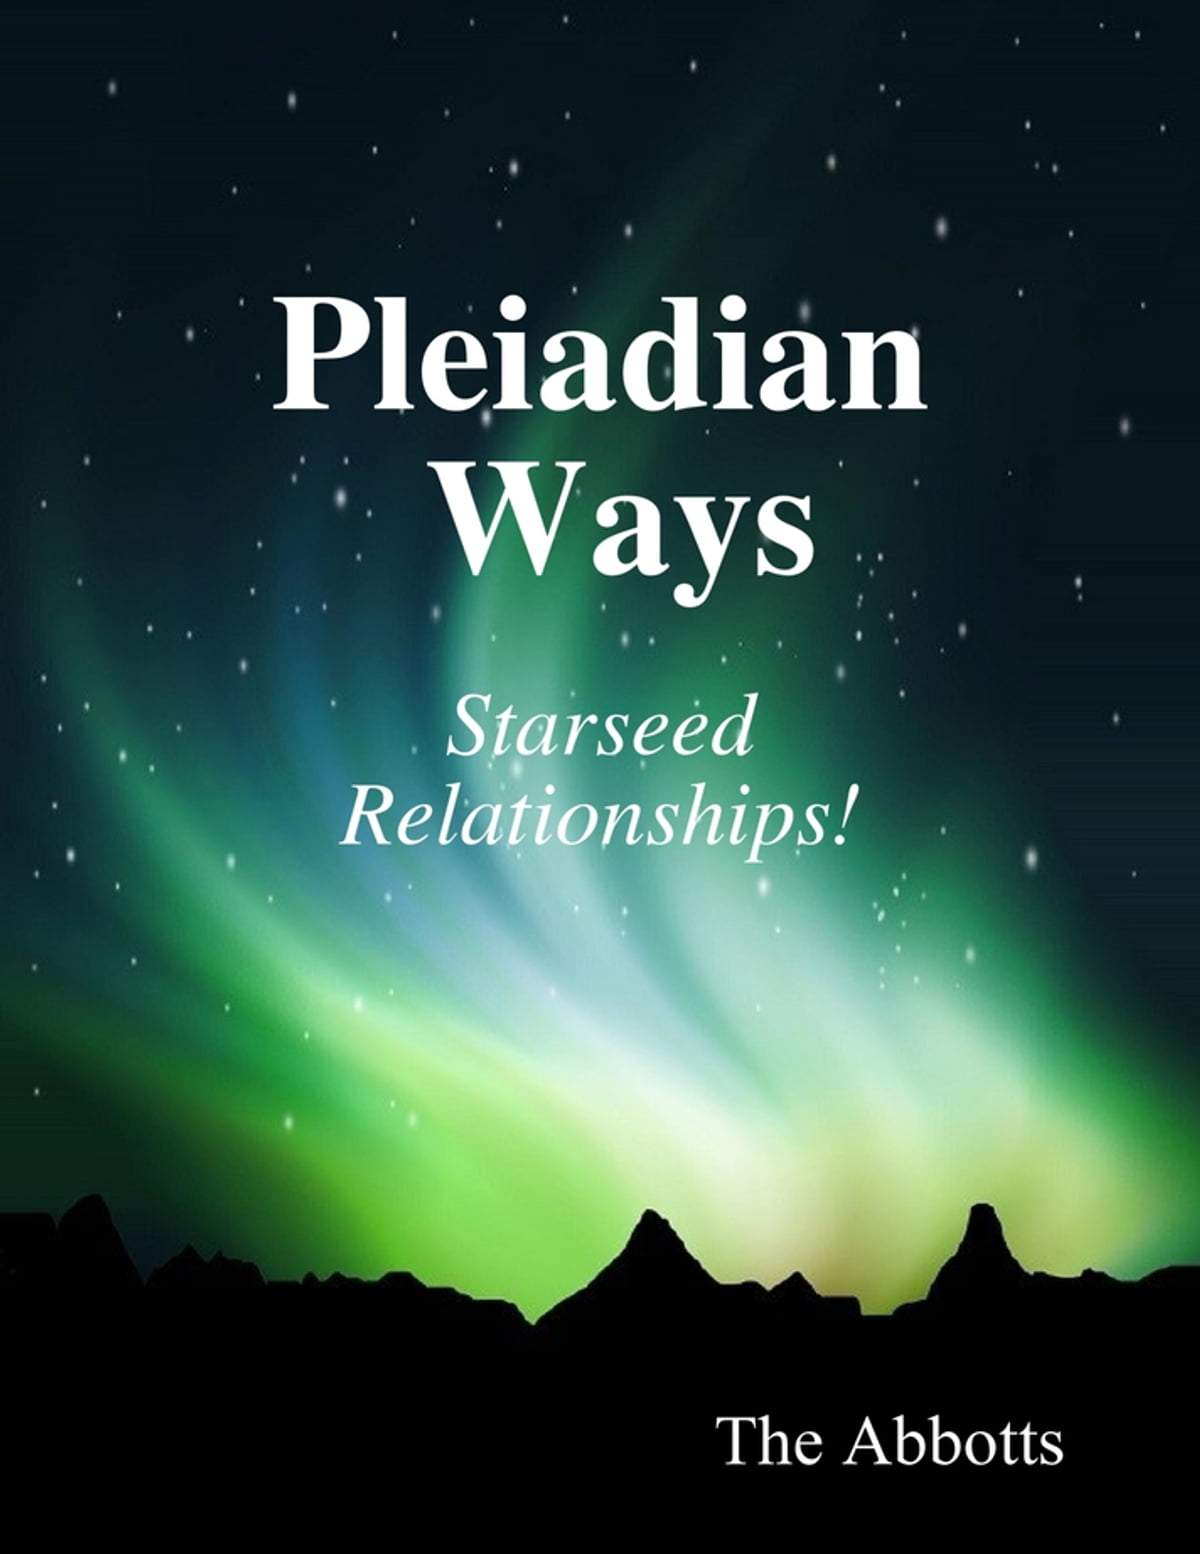 Pleiadian Ways - Starseed Relationships! ebook by The Abbotts - Rakuten Kobo